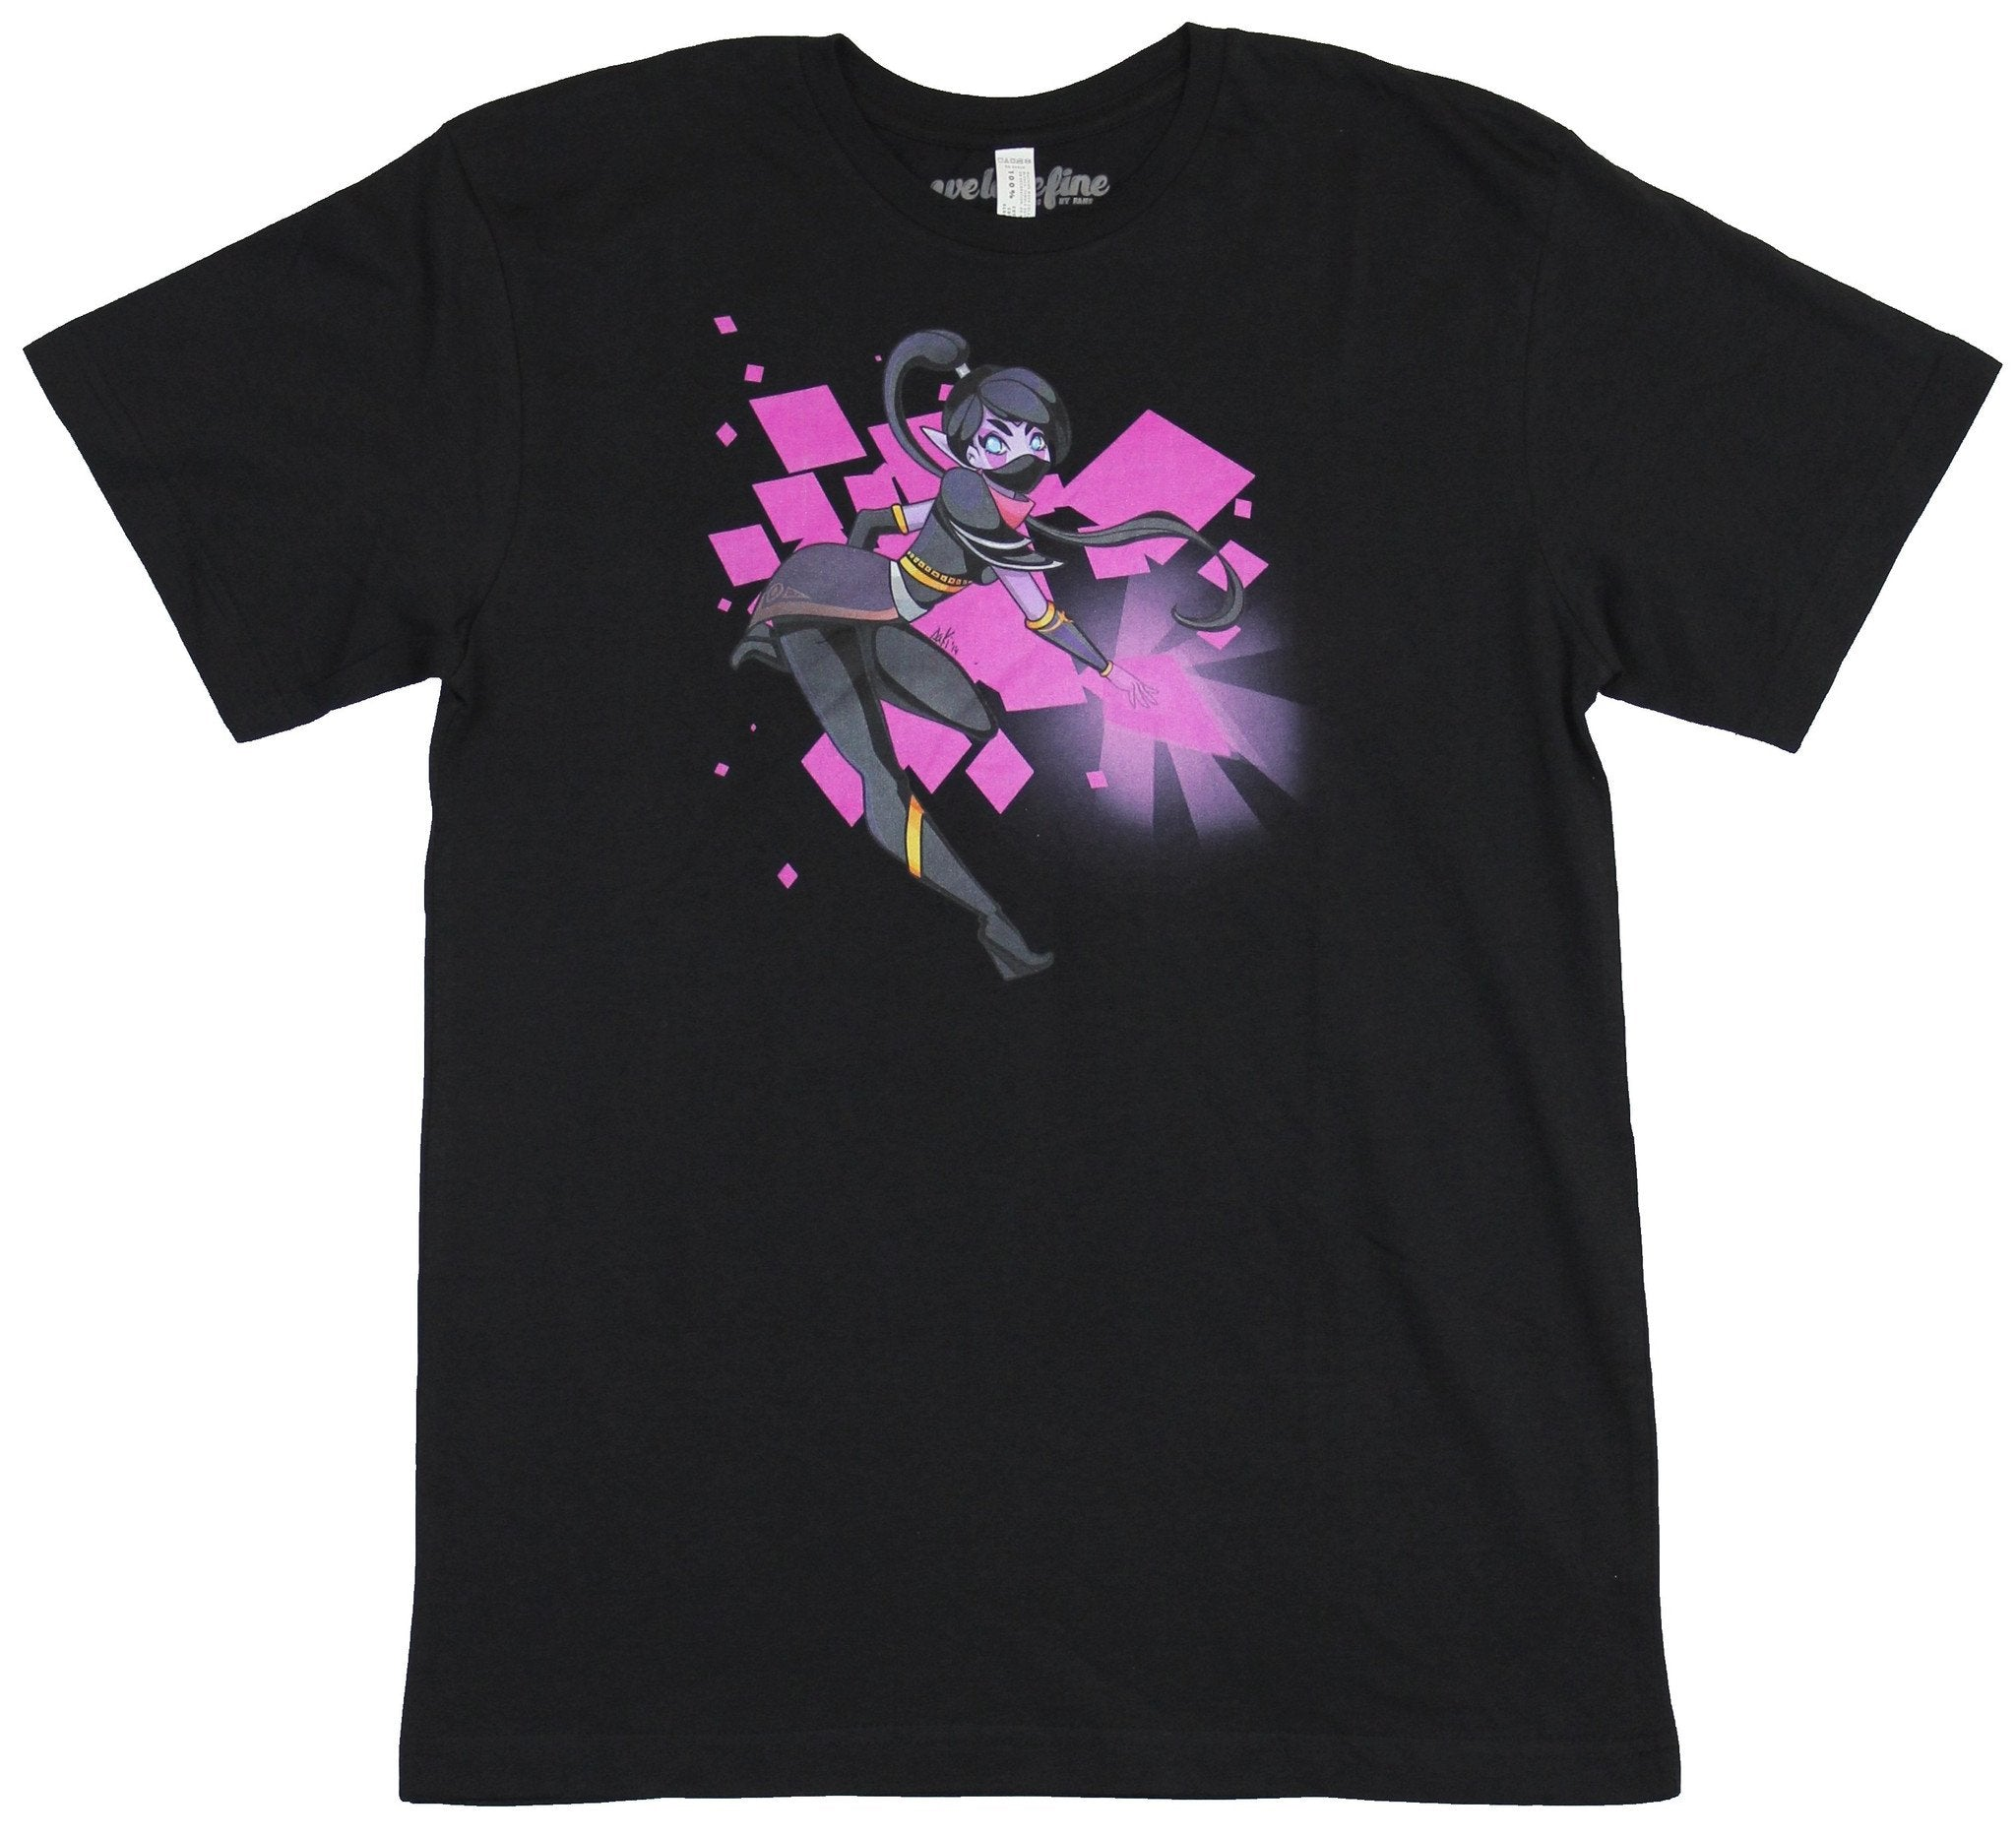 Dota 2 Mens T-Shirt - Purple Light polygon Lanaya Image